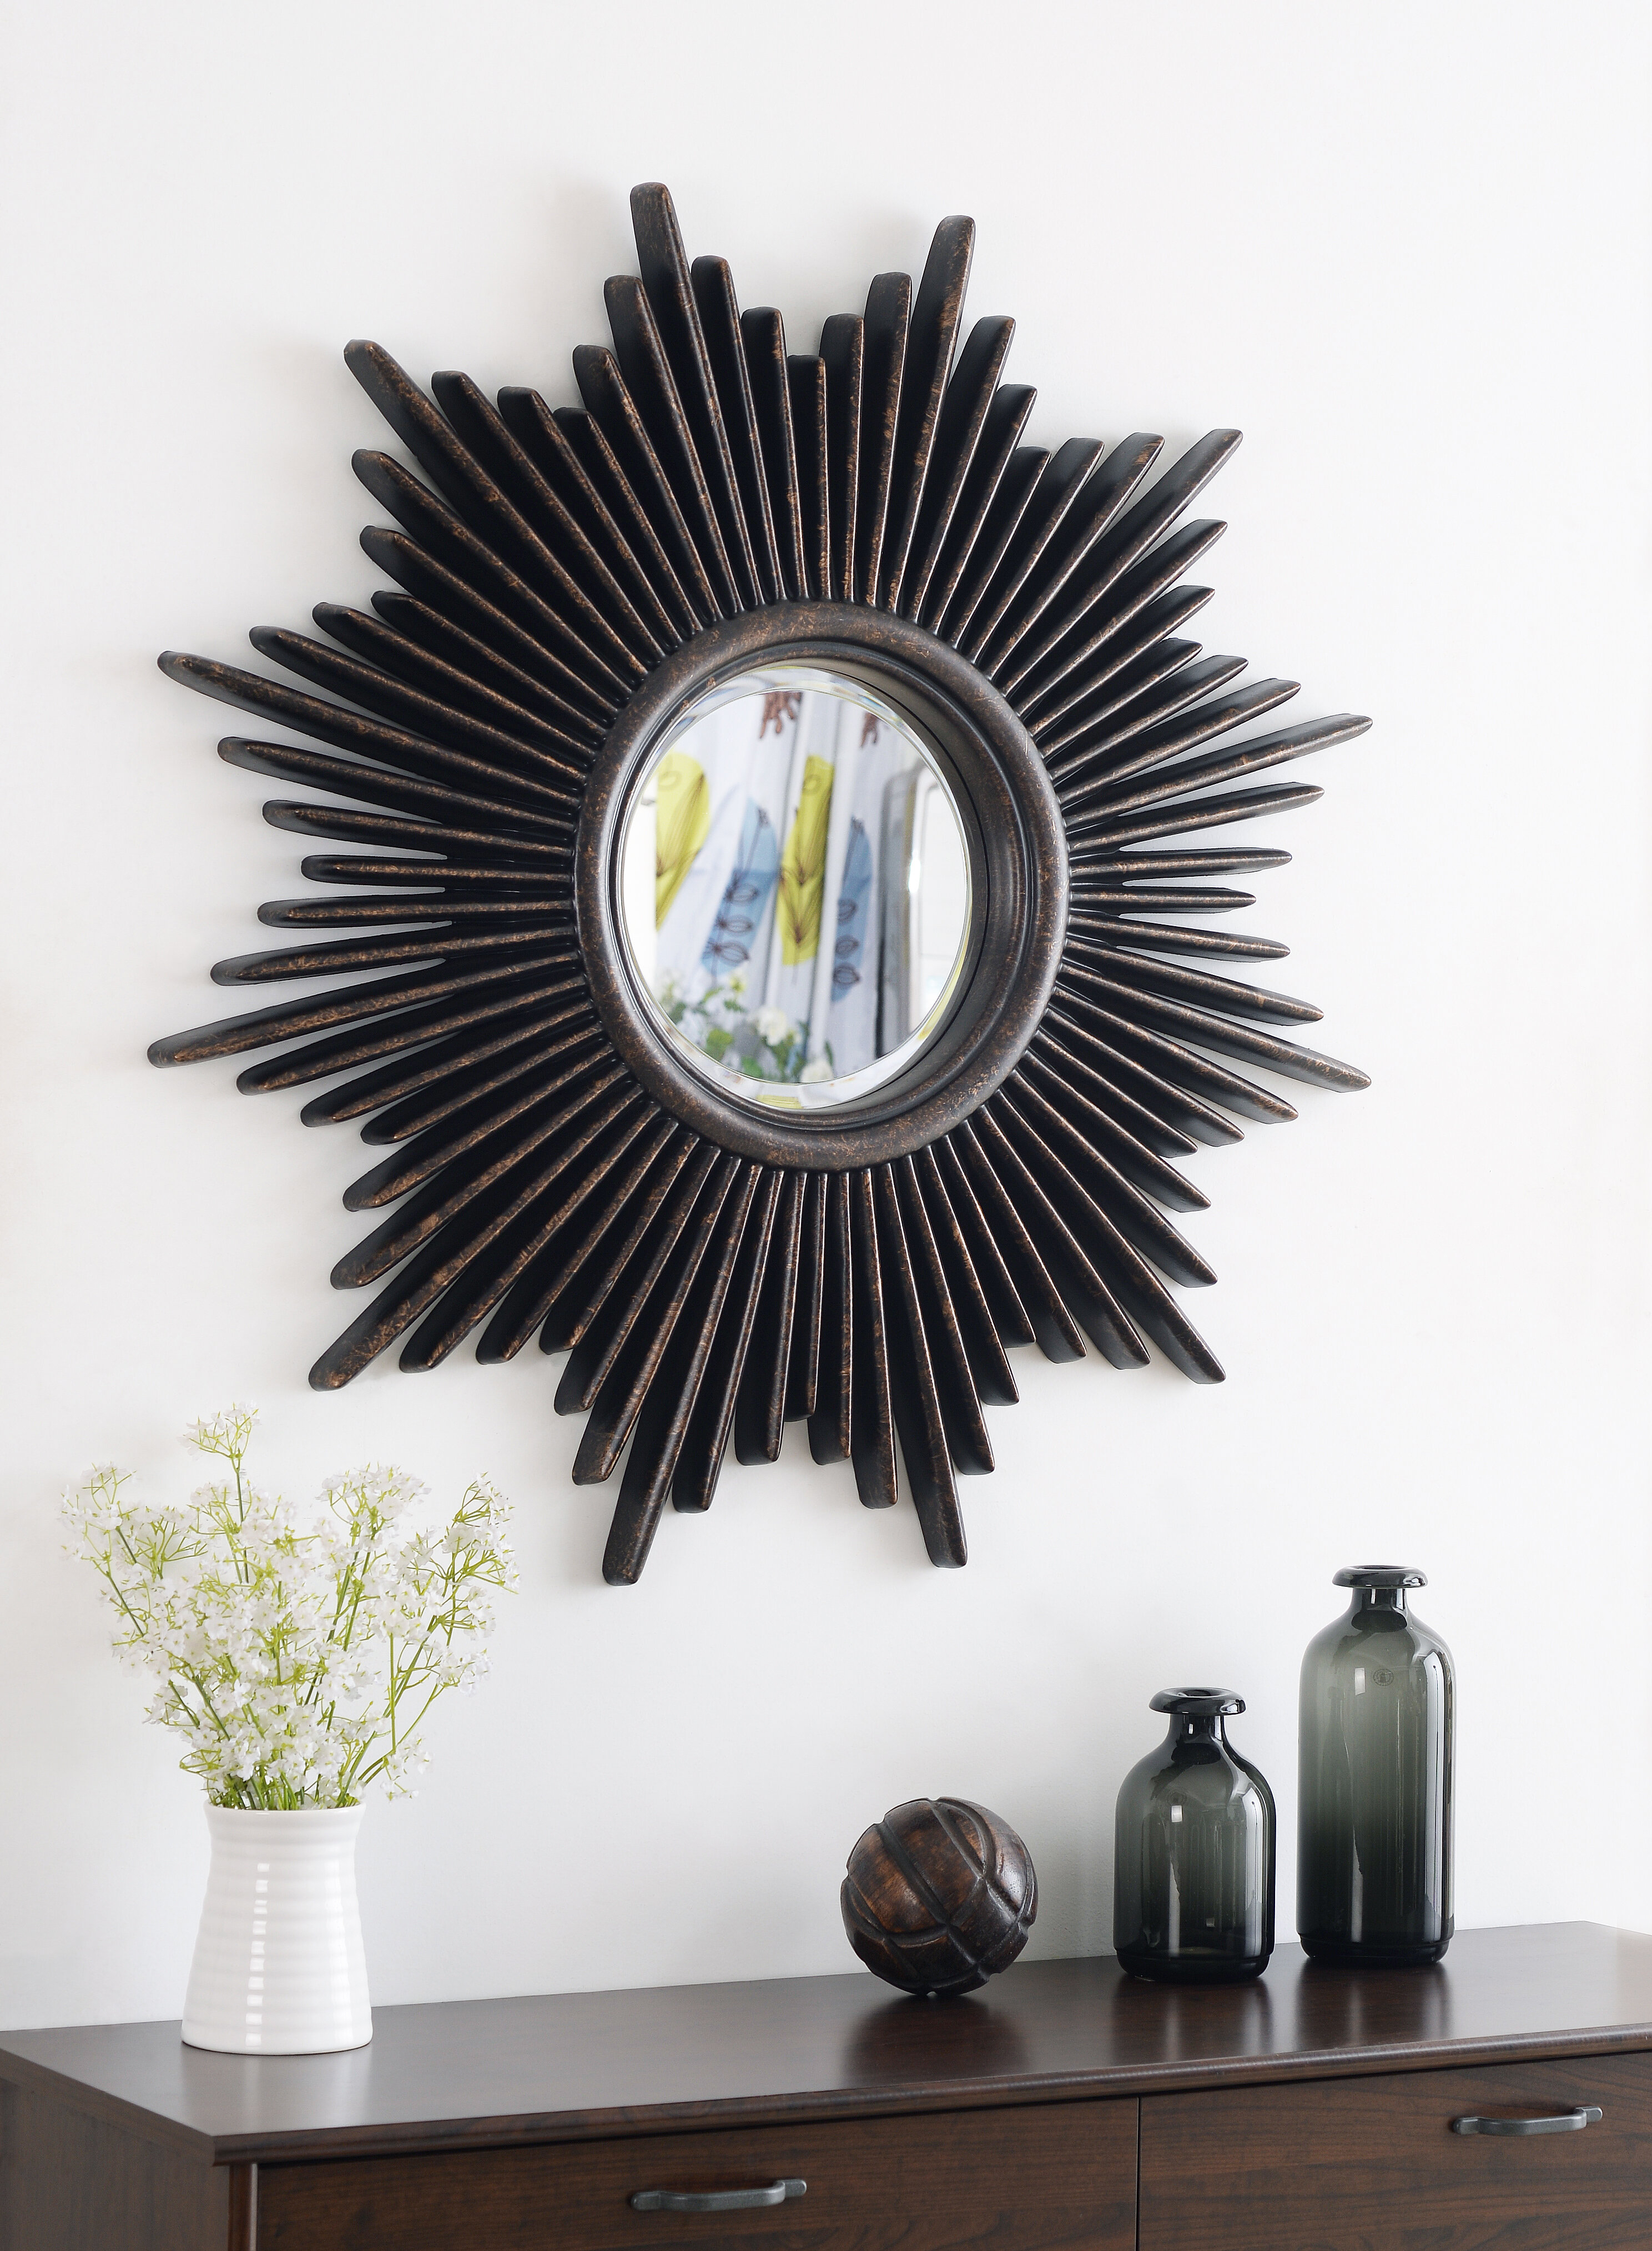 Josephson Starburst Glam Beveled Accent Wall Mirror for Josephson Starburst Glam Beveled Accent Wall Mirrors (Image 10 of 22)